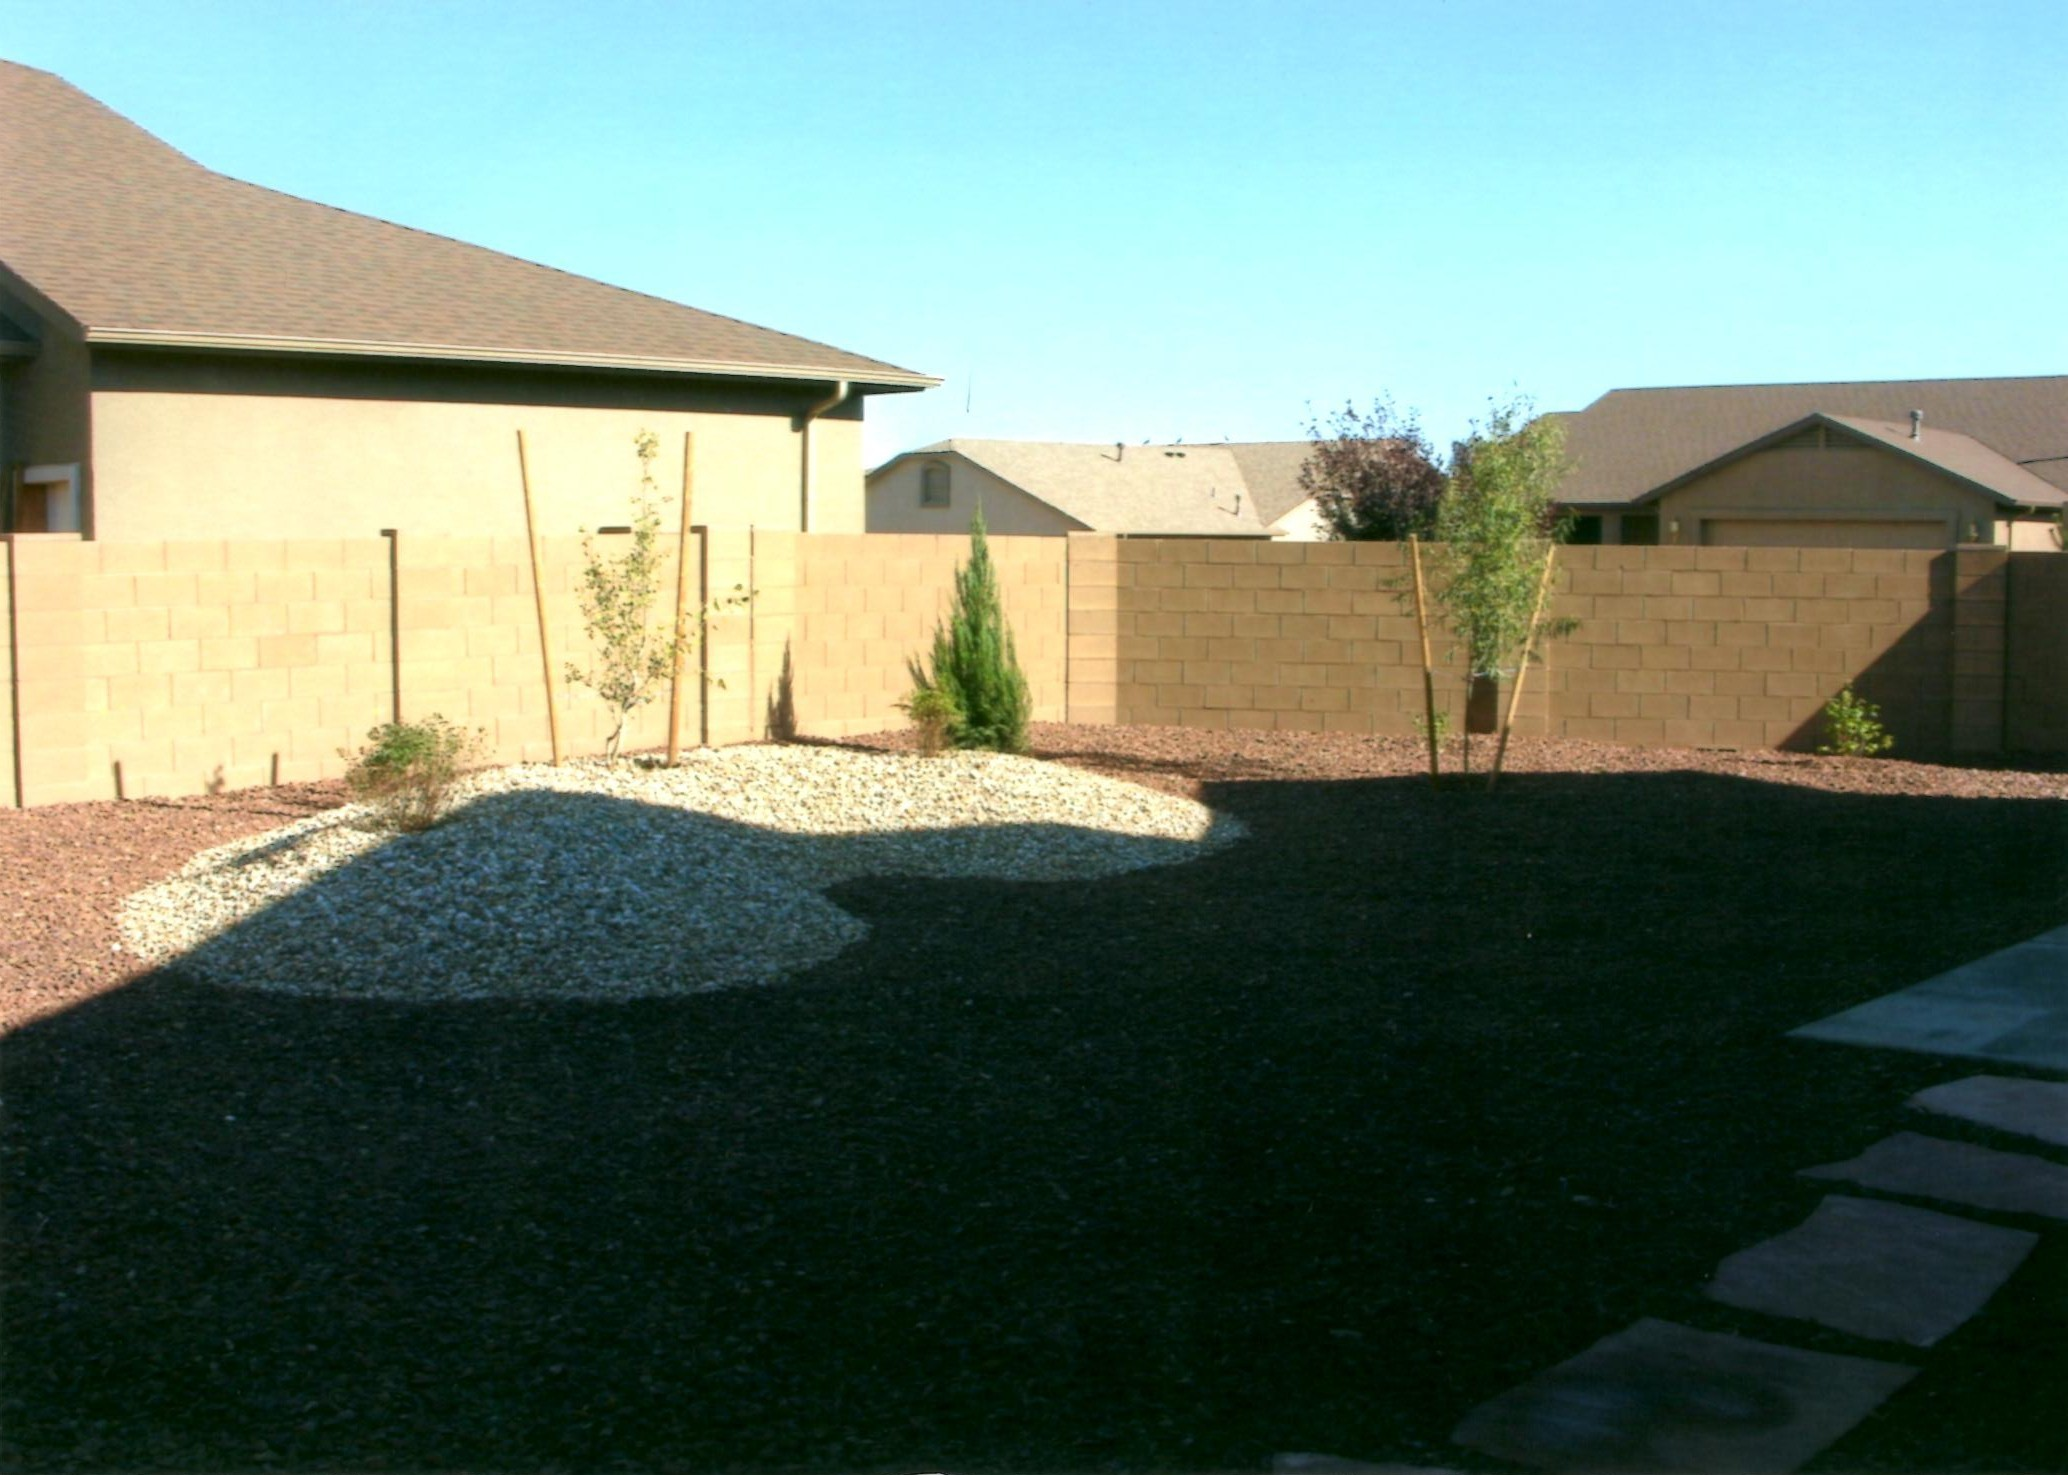 Simple, affordable backyard, that looks great!  Two gravel tones, set off with a kidney shaped mound with plants and aspen tree.